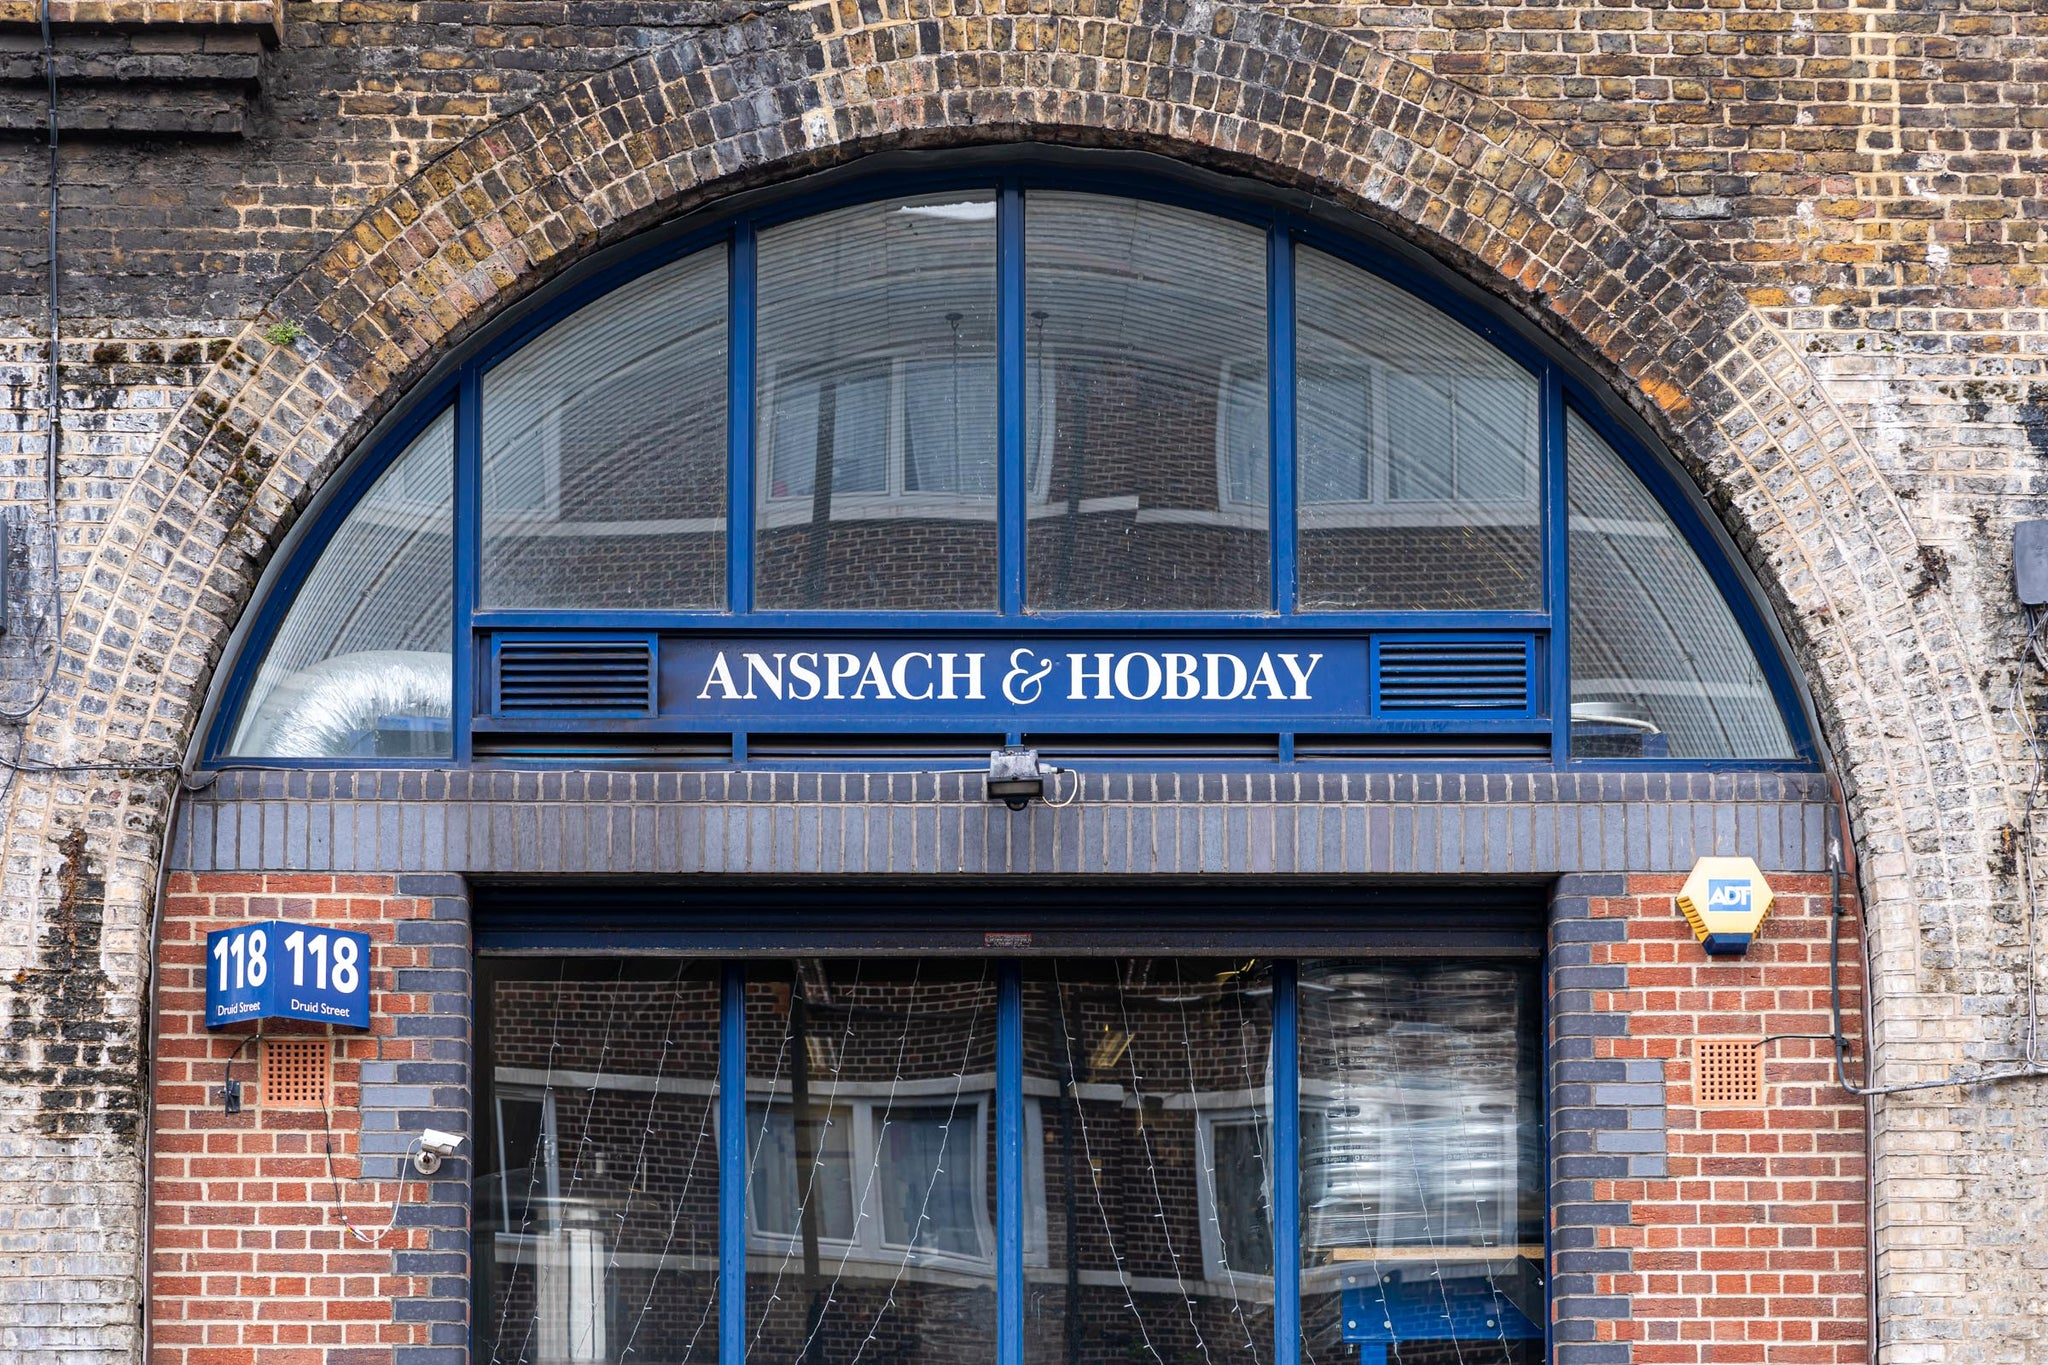 Anspach & Hobday Craft beer brewery in London